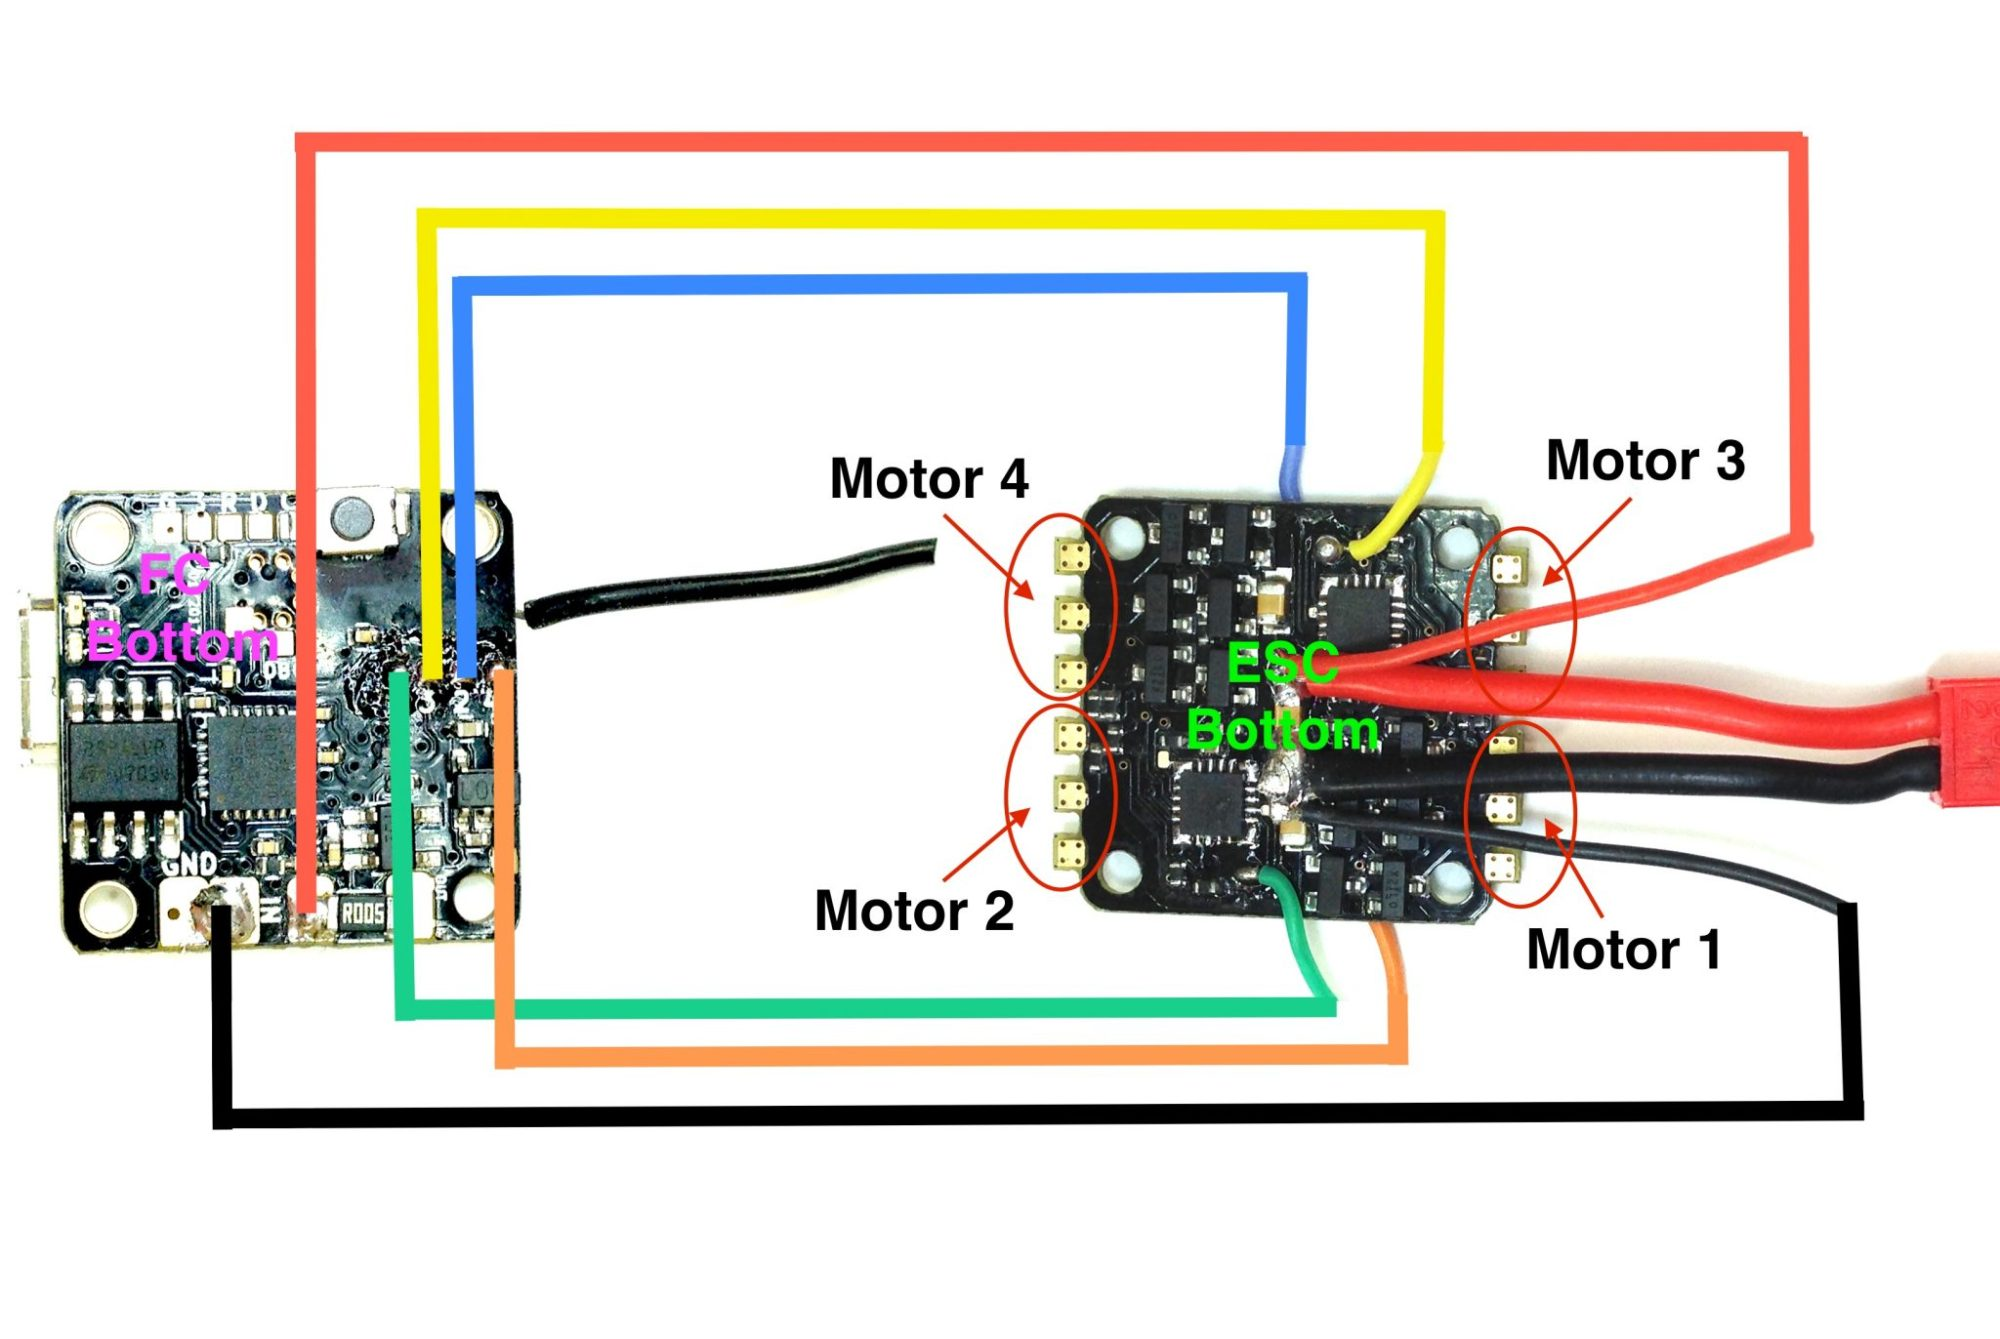 hight resolution of tinyfish fc and tinypepper 1s 4a esc wiring diagram flex rc rc esc wiring diagram rc esc wiring diagram